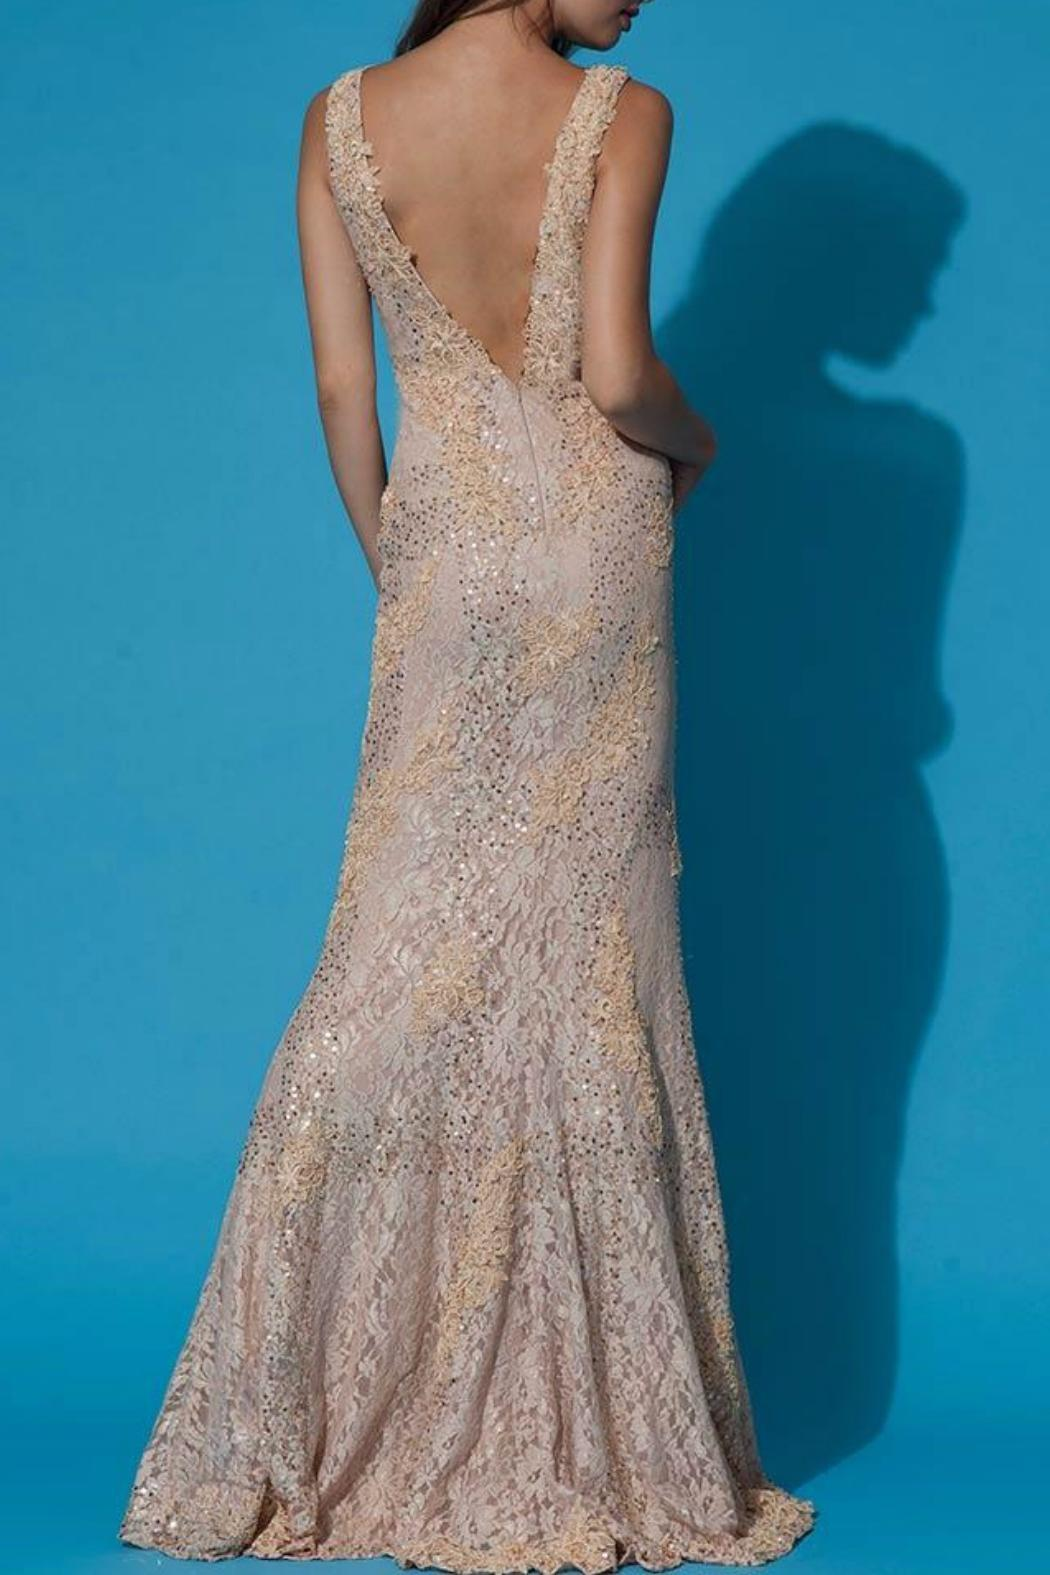 Jovani PROM Sleeveless Lace Dress from New York City by Effie\'s ...